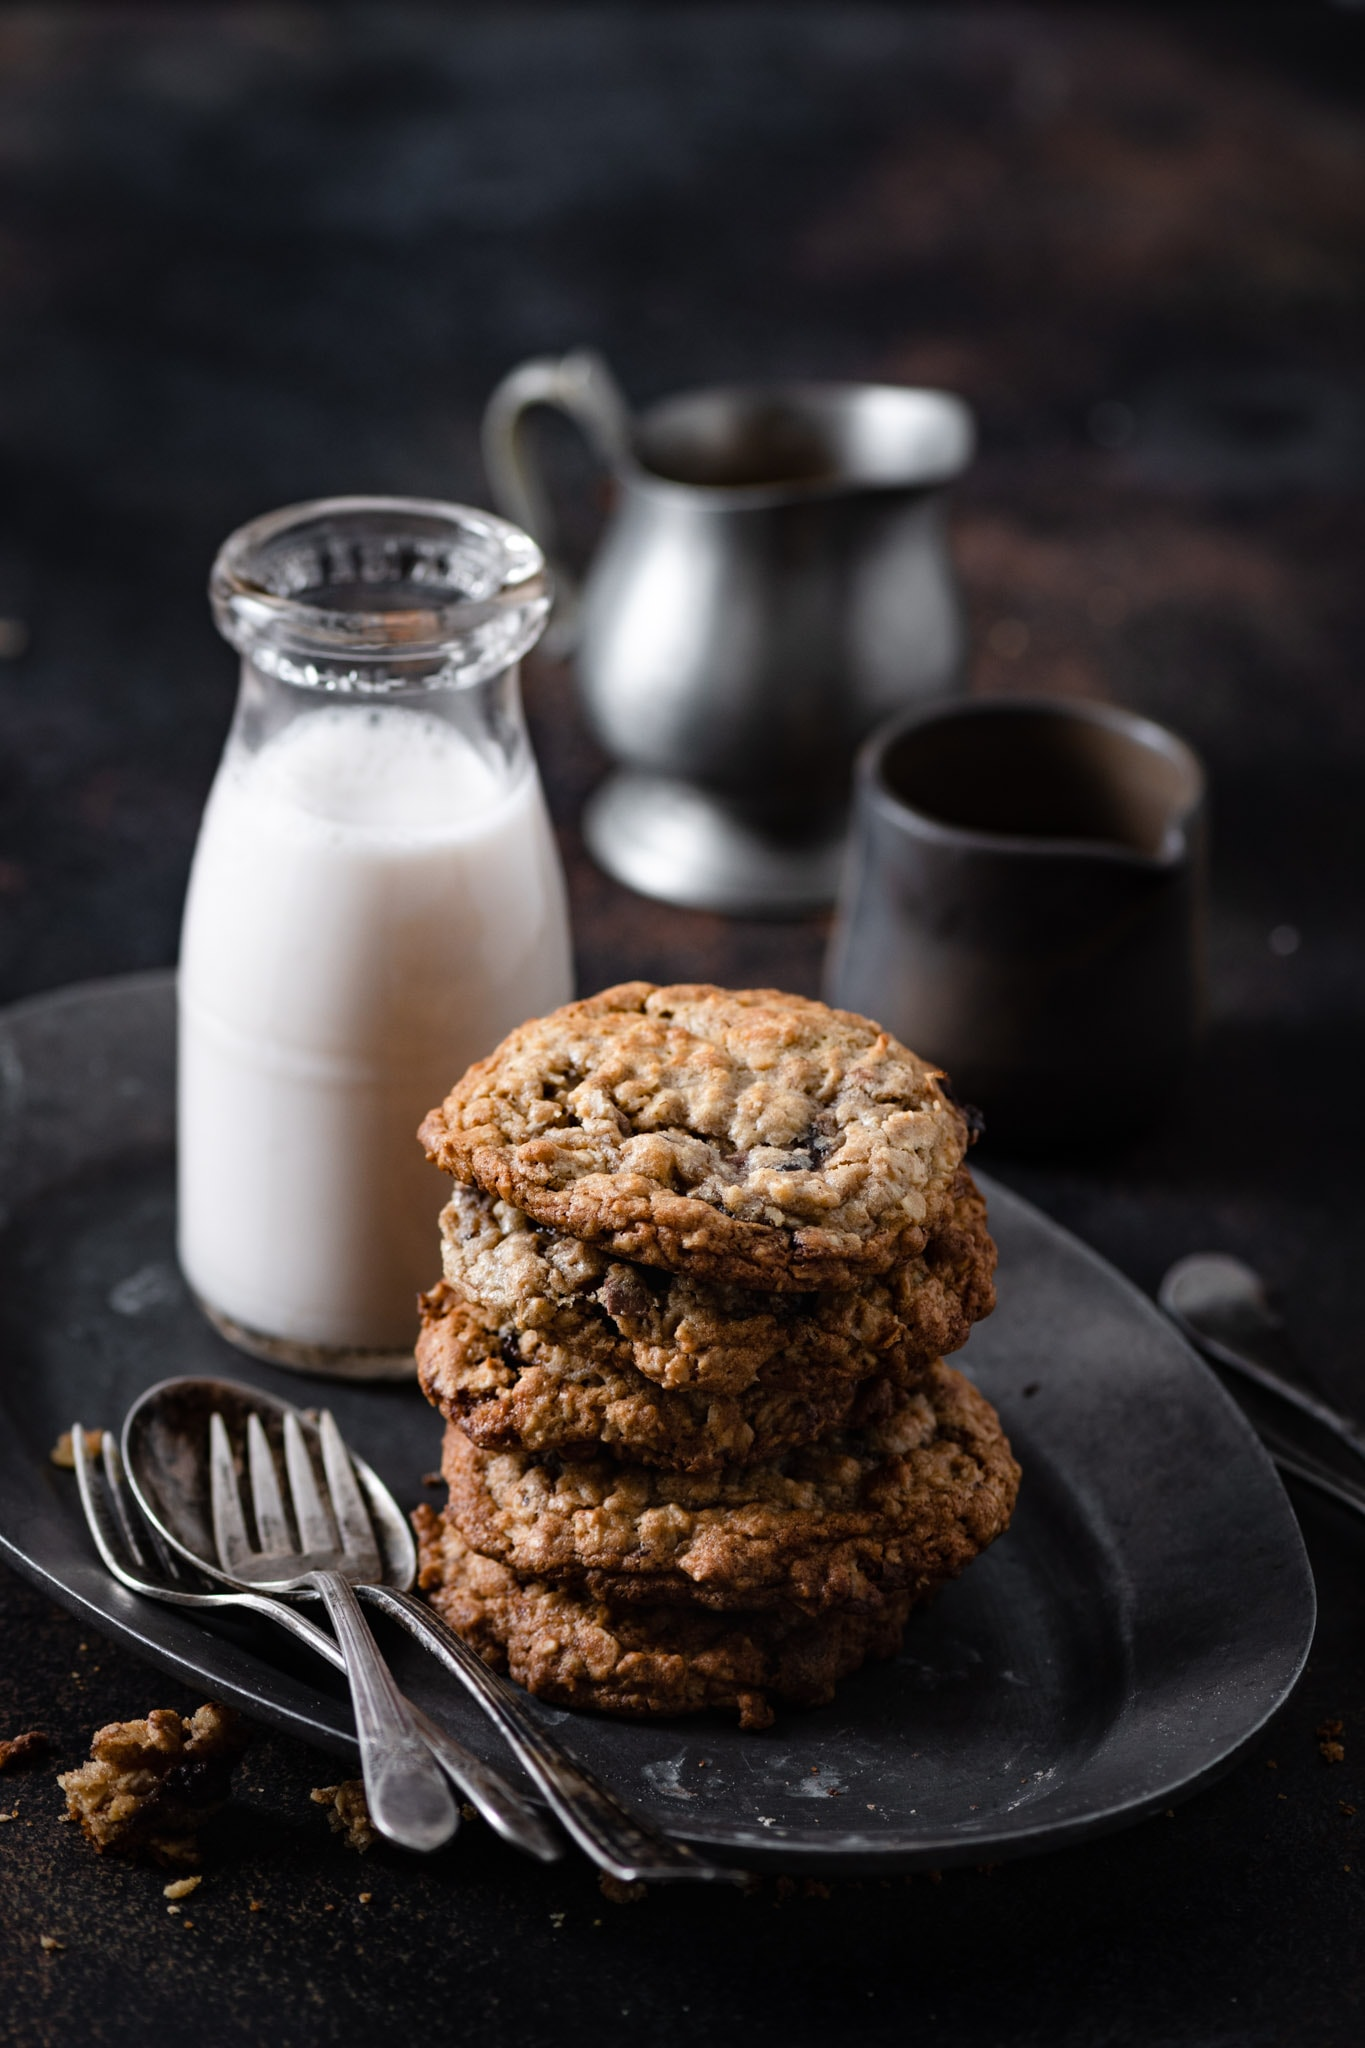 Easy oatmeal cookie recipe with chocolate truffles.